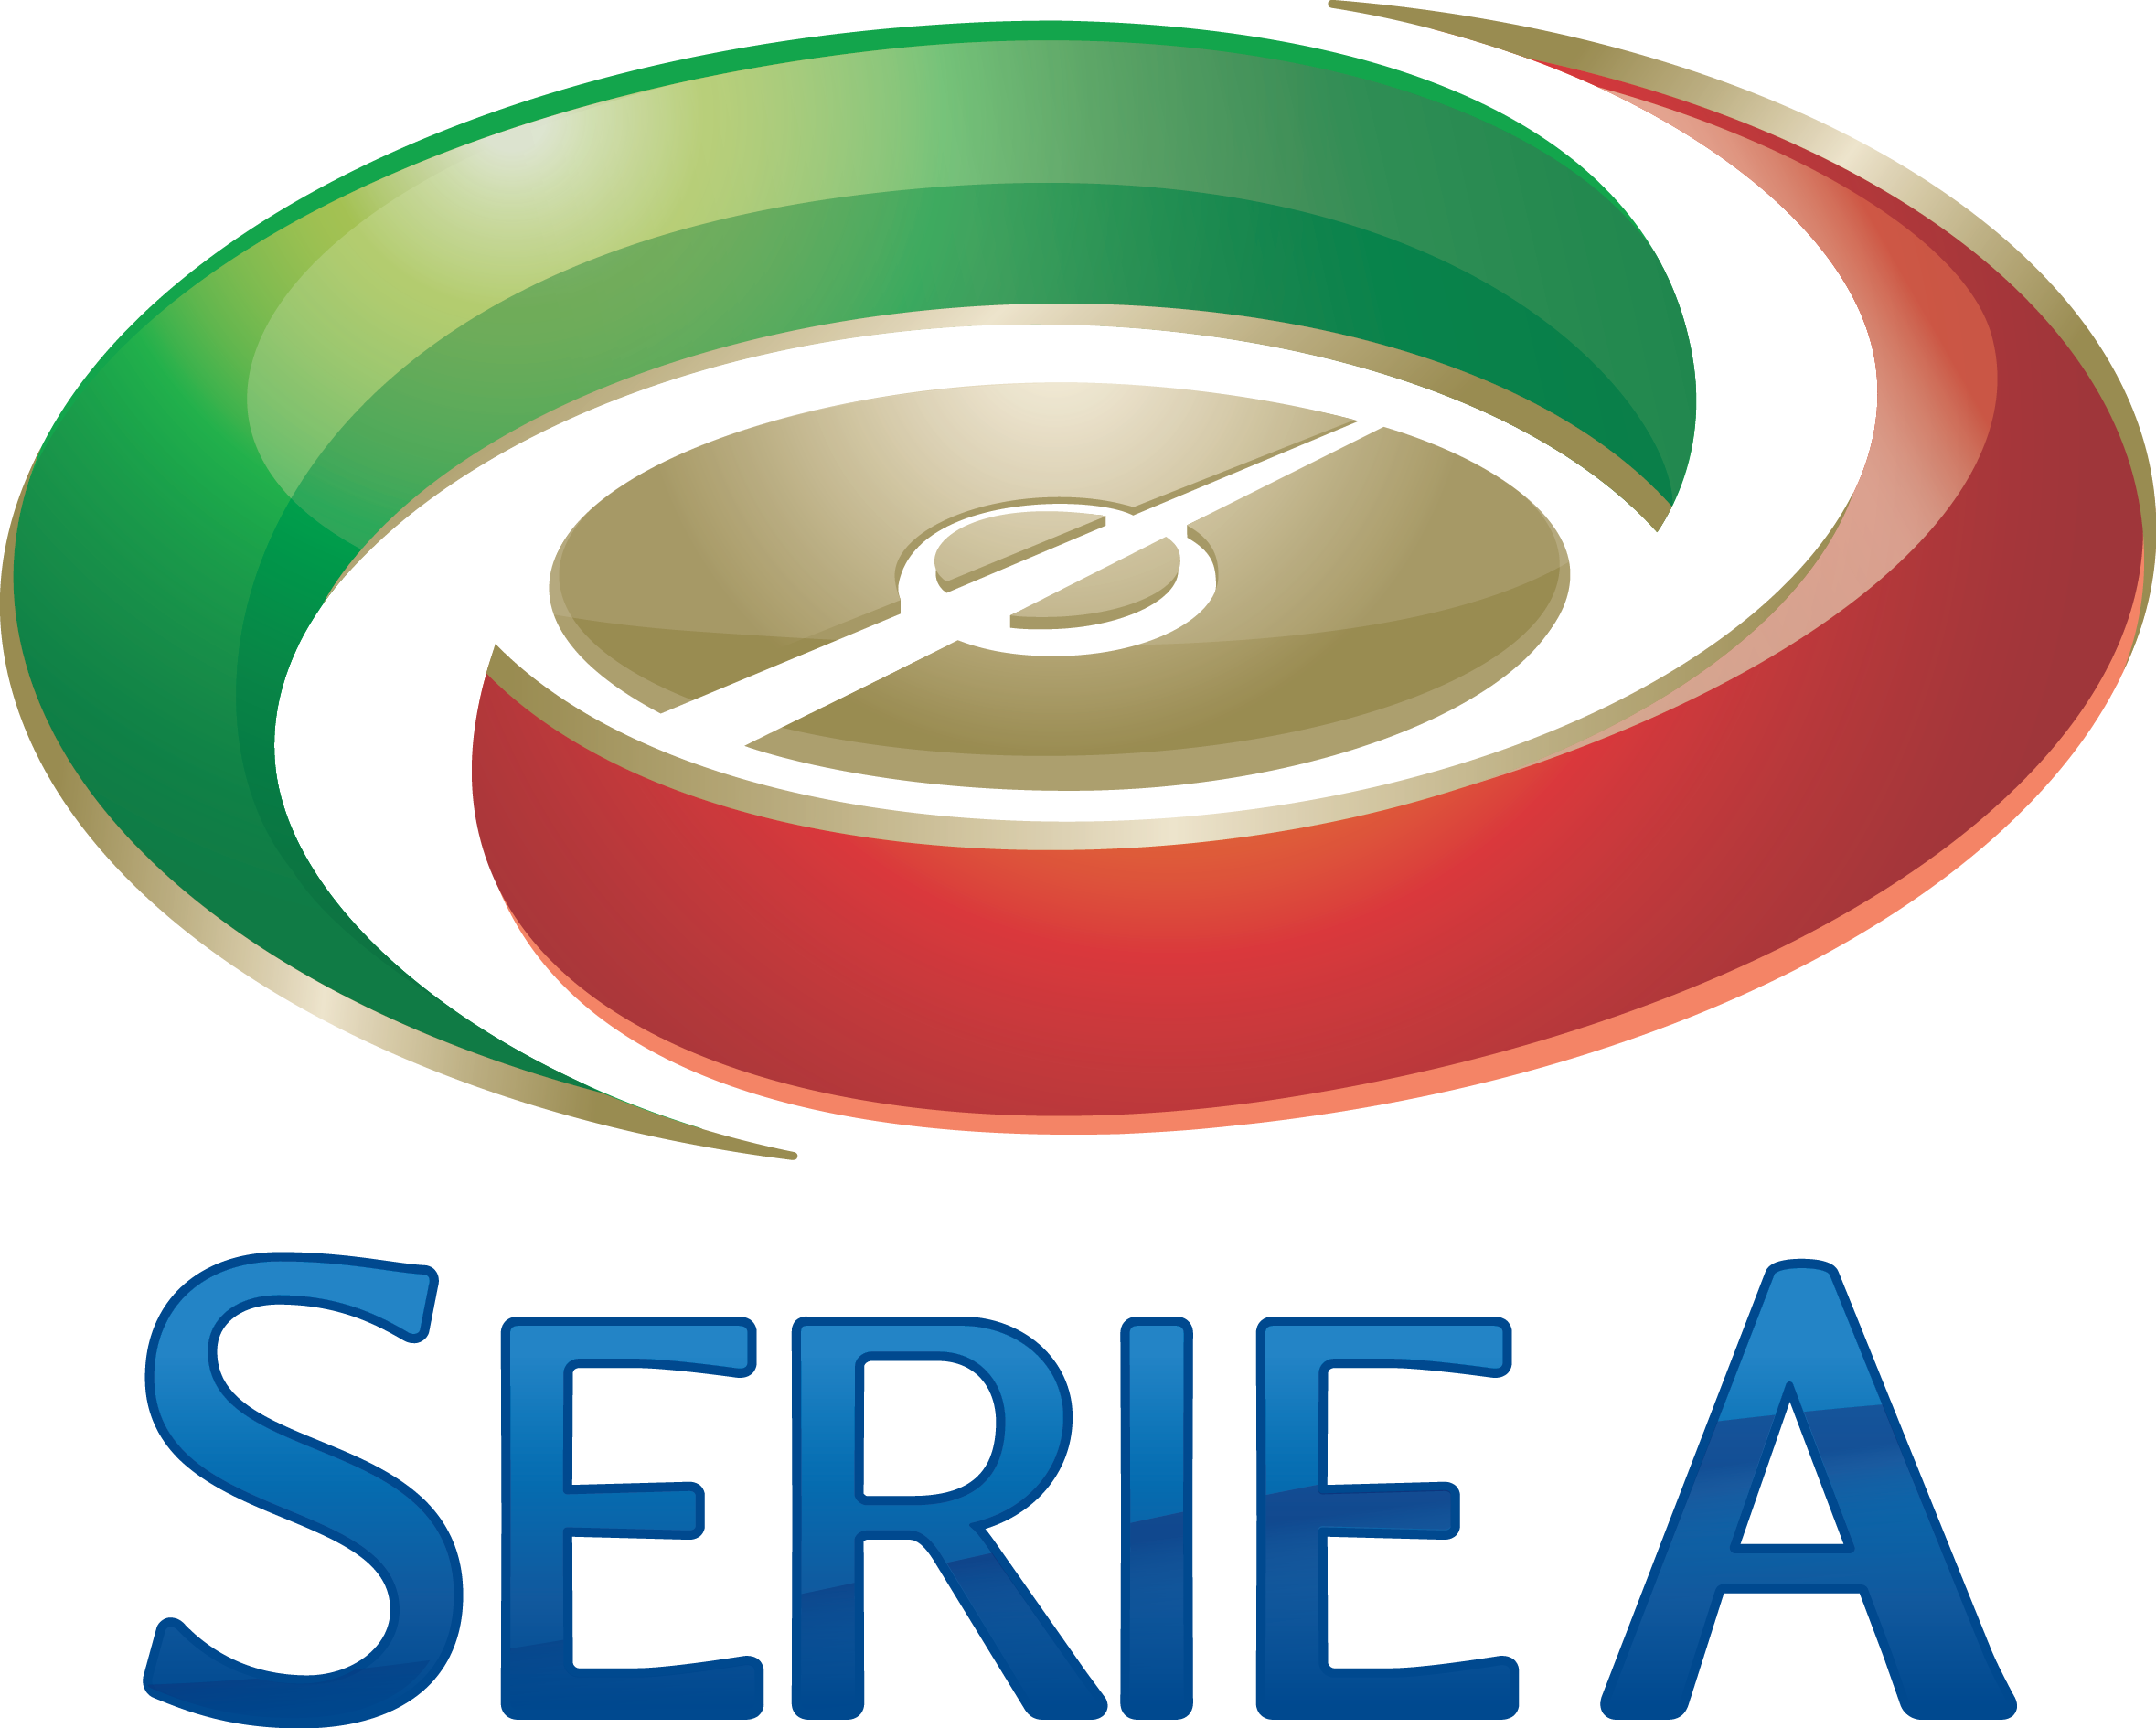 AS Roma vs Carpi zusammenfassung und tor video 26/09/2015